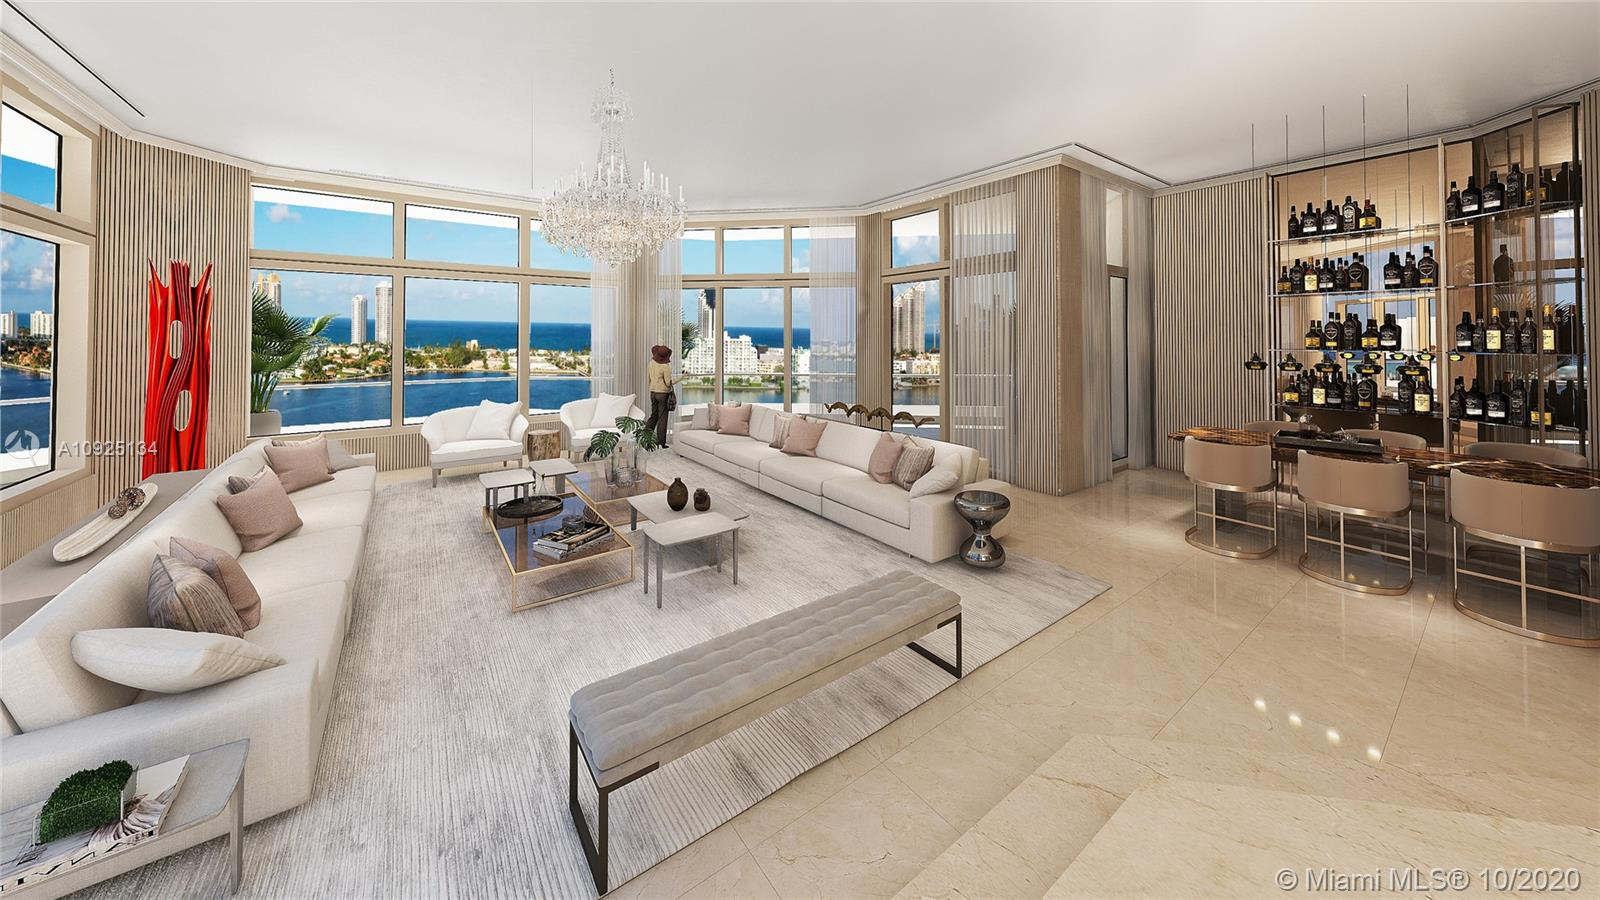 Enjoy breath-taking vistas from this majestic Penthouse at Residence Du Cap. Located in the exclusive Williams Island in Aventura, this 2-Story Penthouse boasts 5,880 Sqft of living area, 4 bedrooms & 5.5 bathrooms, a formal dining room, a huge kitchen with Subzero and Gaggenau appliances, marble floors throughout, and a private elevator. This magnificent residence also features a massive wrap-around terrace with a private pool, jacuzzi, and incredible views of the ocean, intercoastal and sky-line. Residence du Cap is one of the most exclusive addresses nestled within Williams Island, with world-class amenities including a clubhouse, multiple pools, tennis courts, restaurants, spas, and a marina.